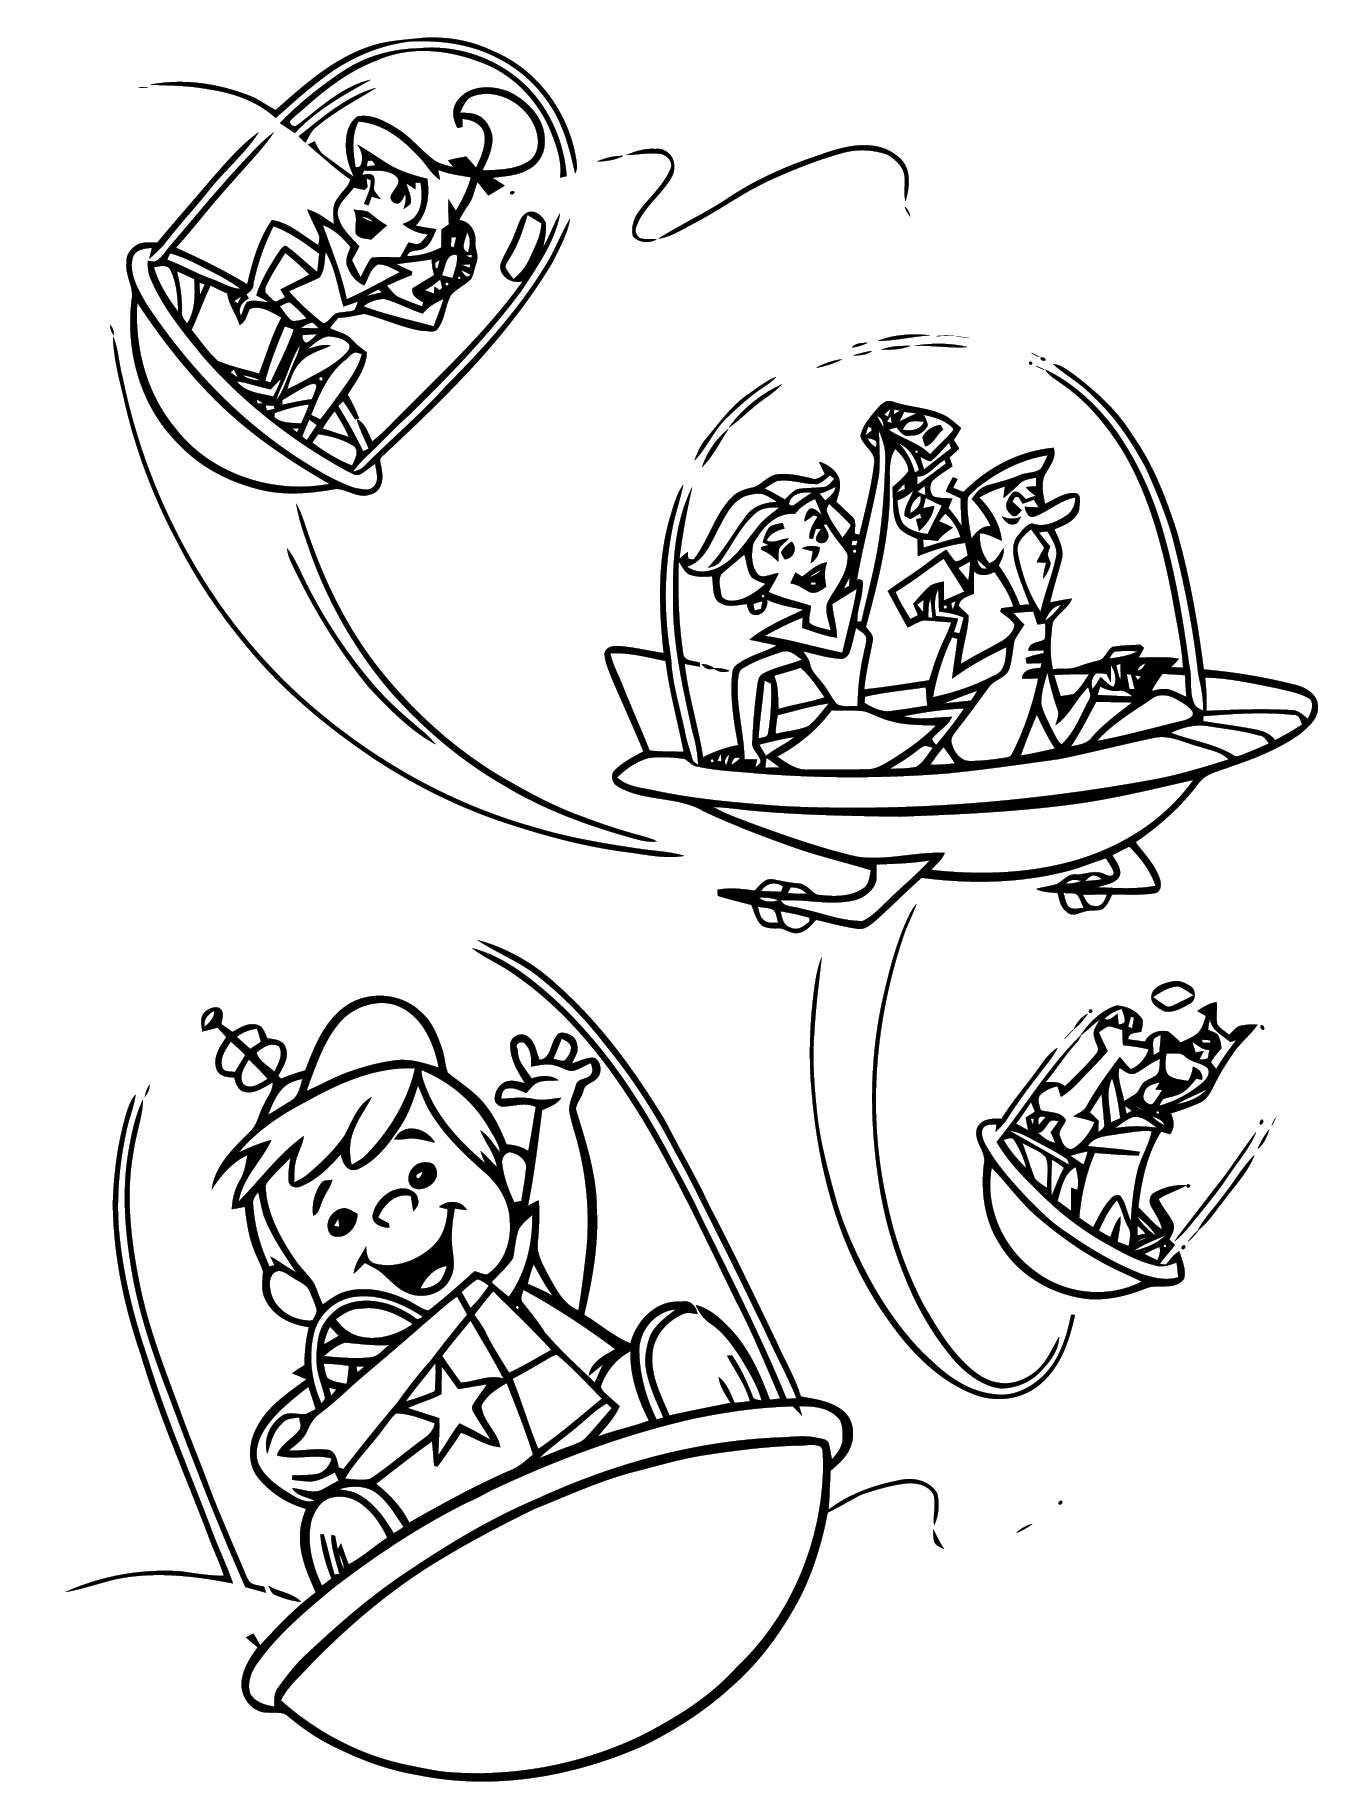 Jetsons 8 Coloring Page